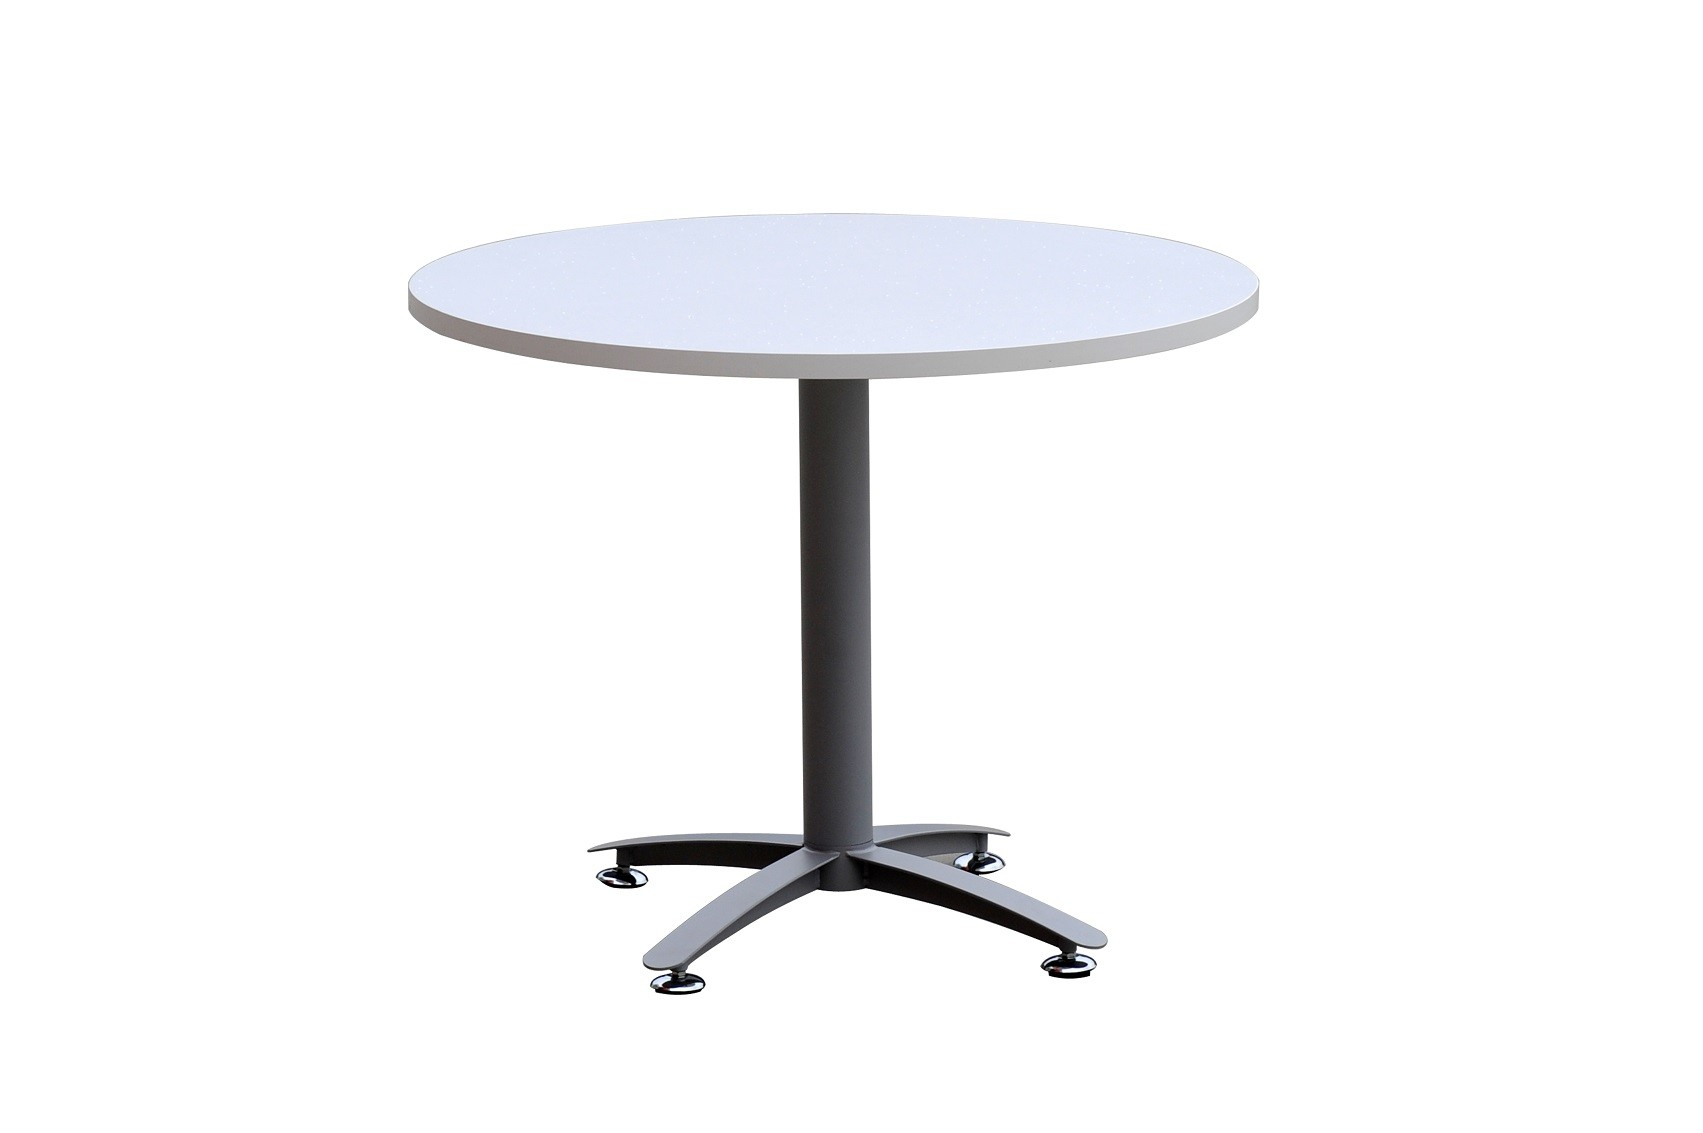 Round Conference Table Metal Way Base Leg Boardroom Tables - Round pedestal conference table